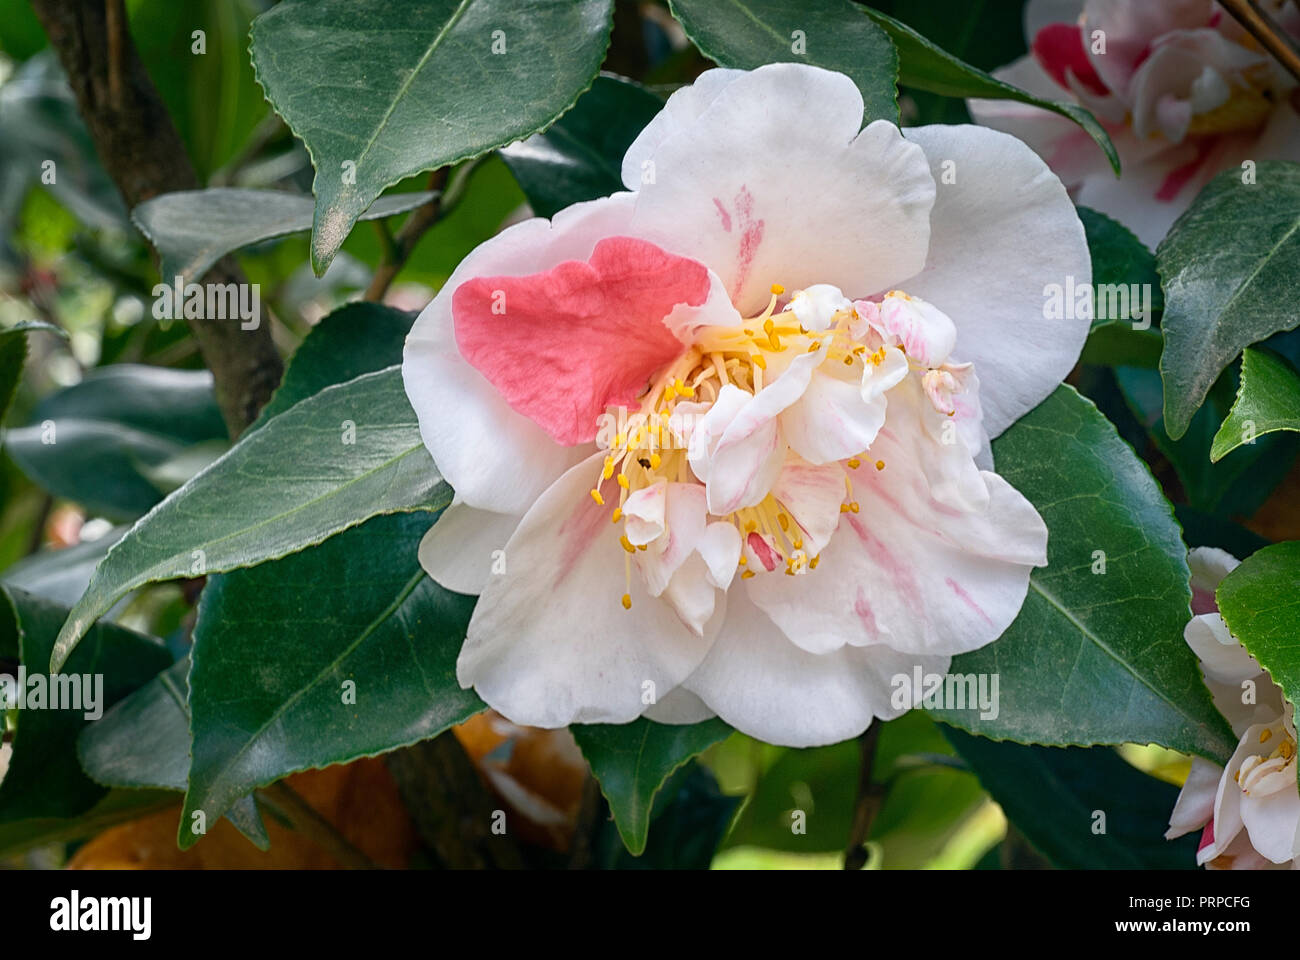 Camellia japonica cv Pomponia Semi-duplex; Theaceae; evergreen shurb; semi-double flower; white beckground with red stripes - Stock Image